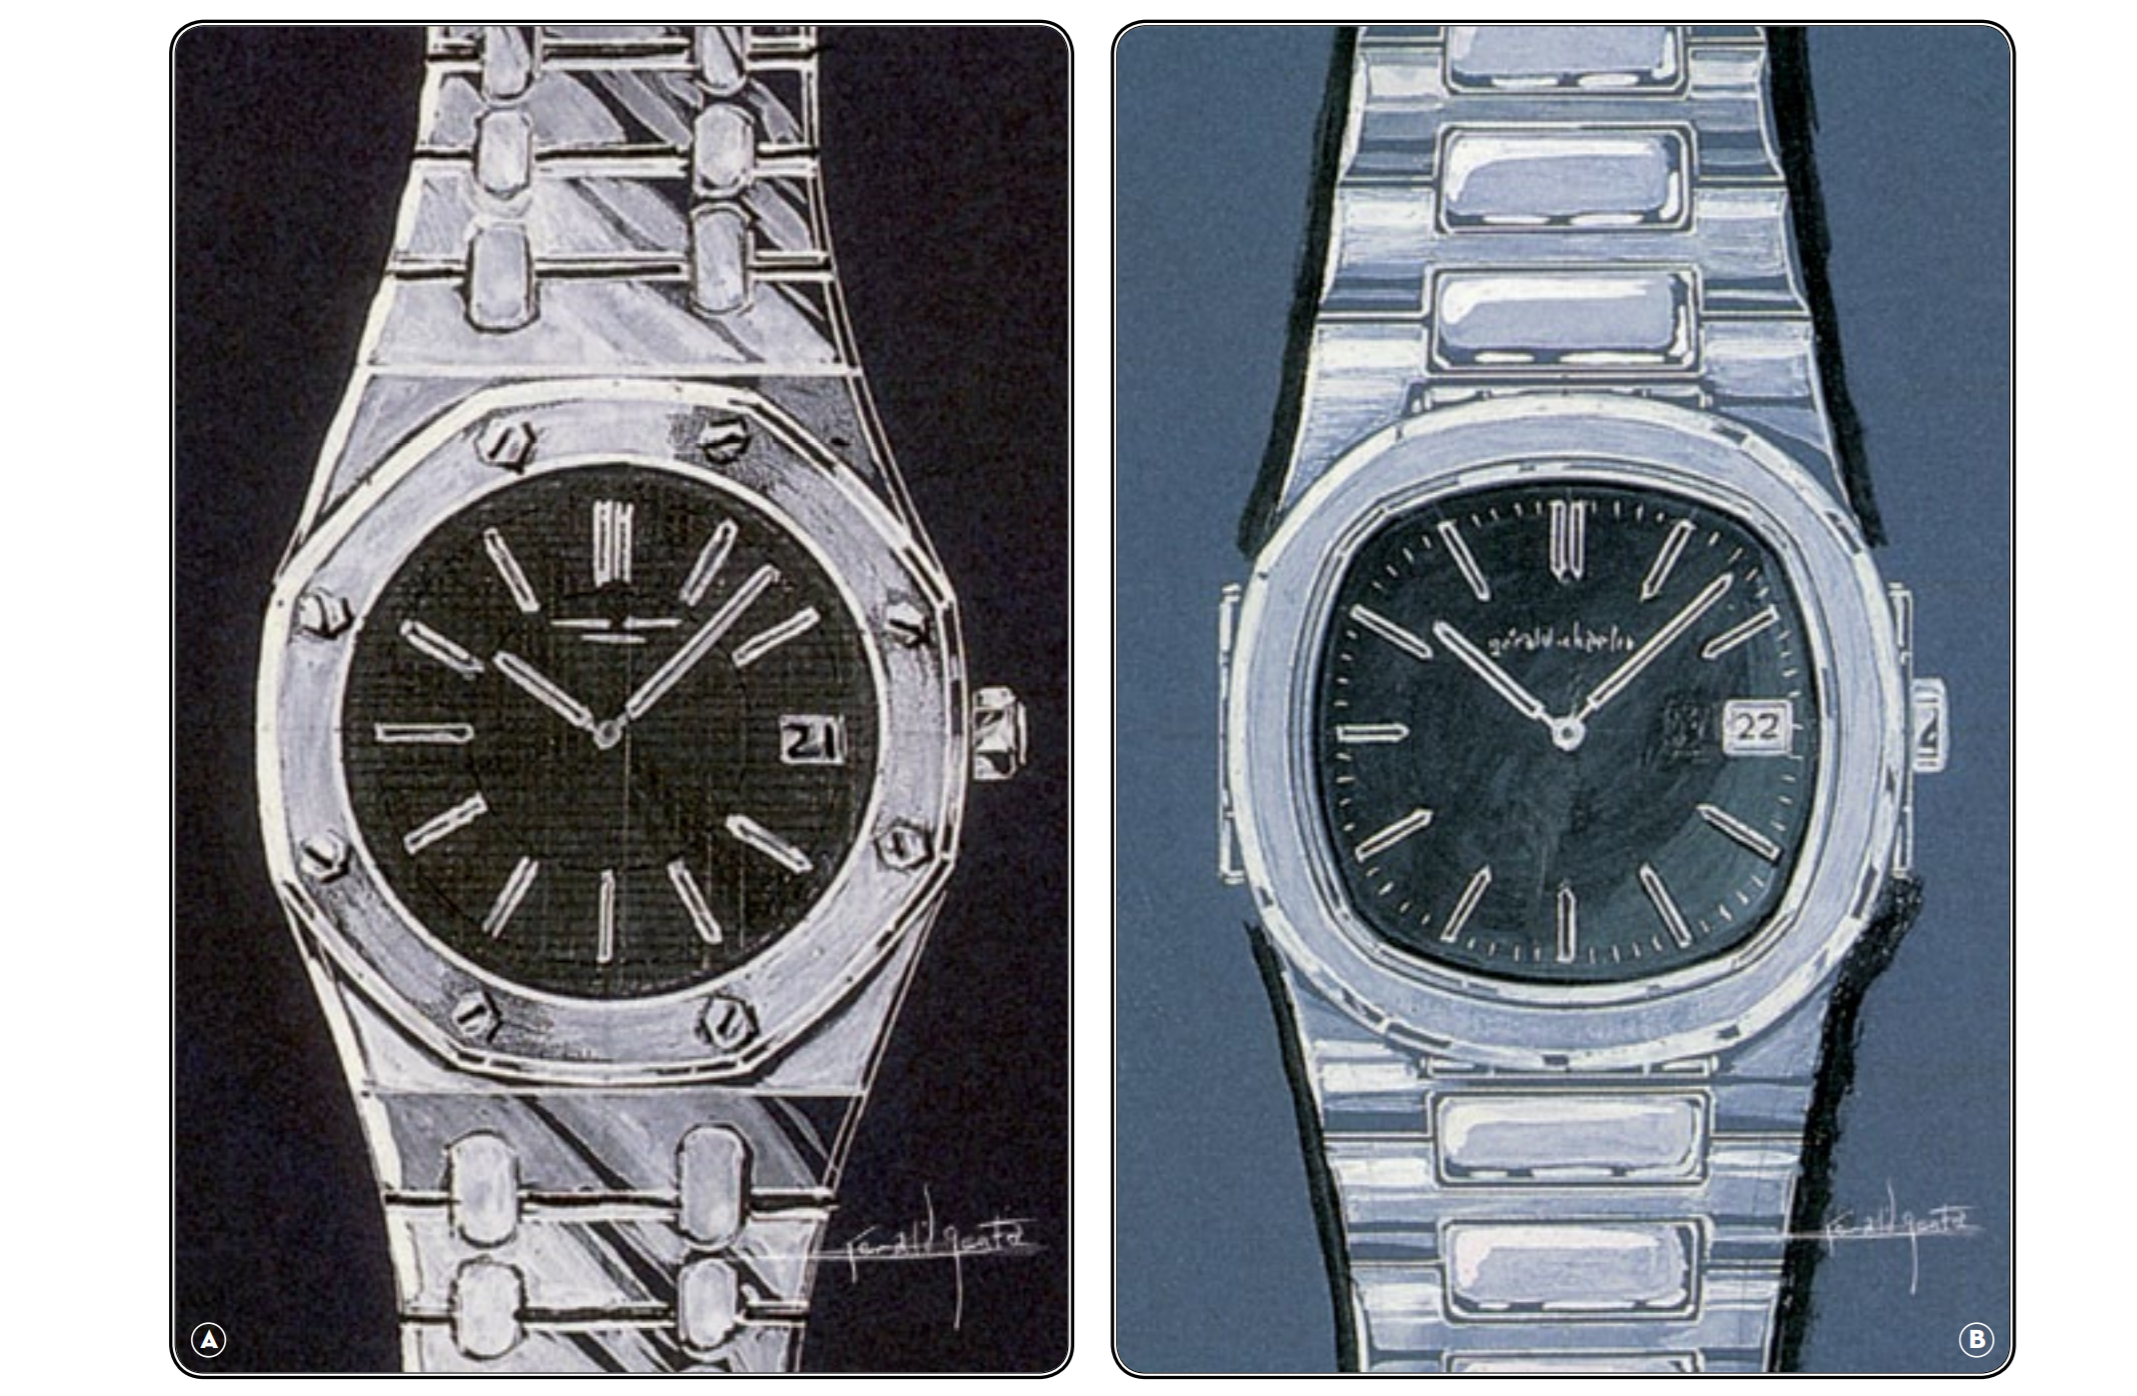 Original Gerald Genta designs, the Royal Oak and Nautlius